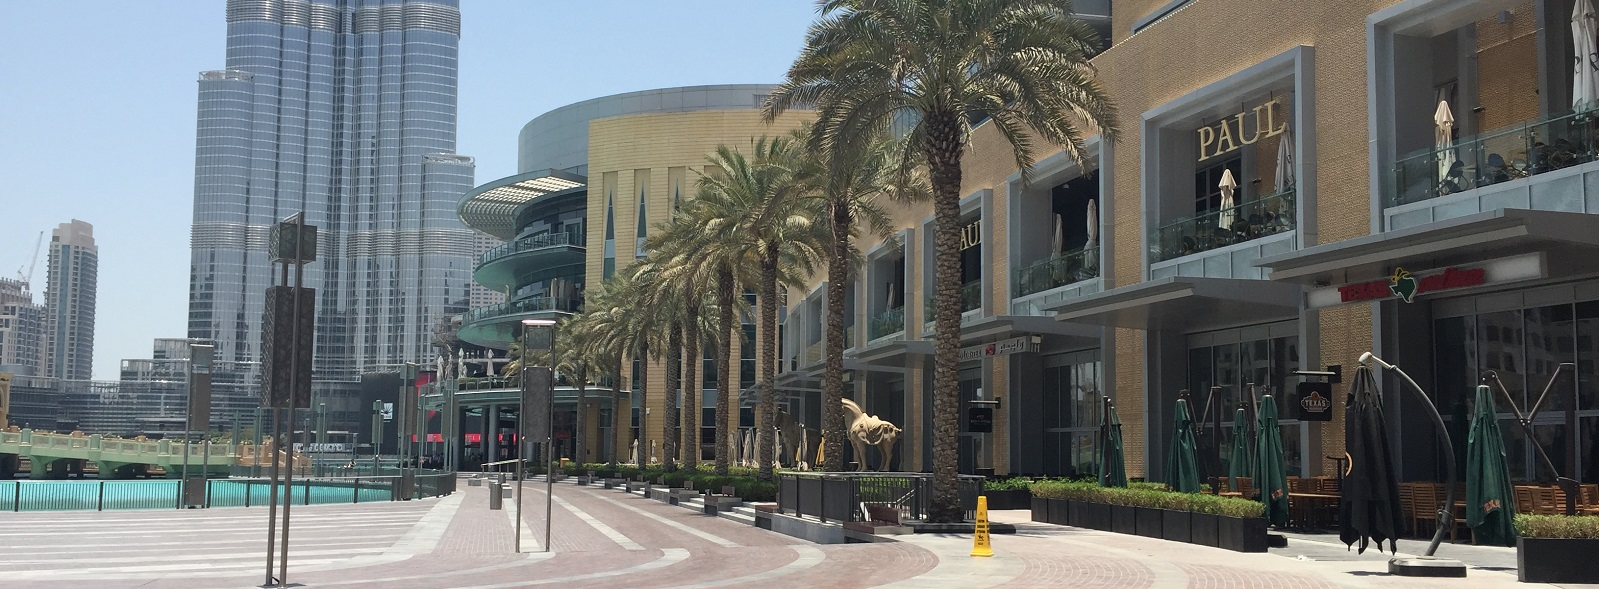 Real estate in Dubai - IMG_1510.jpg